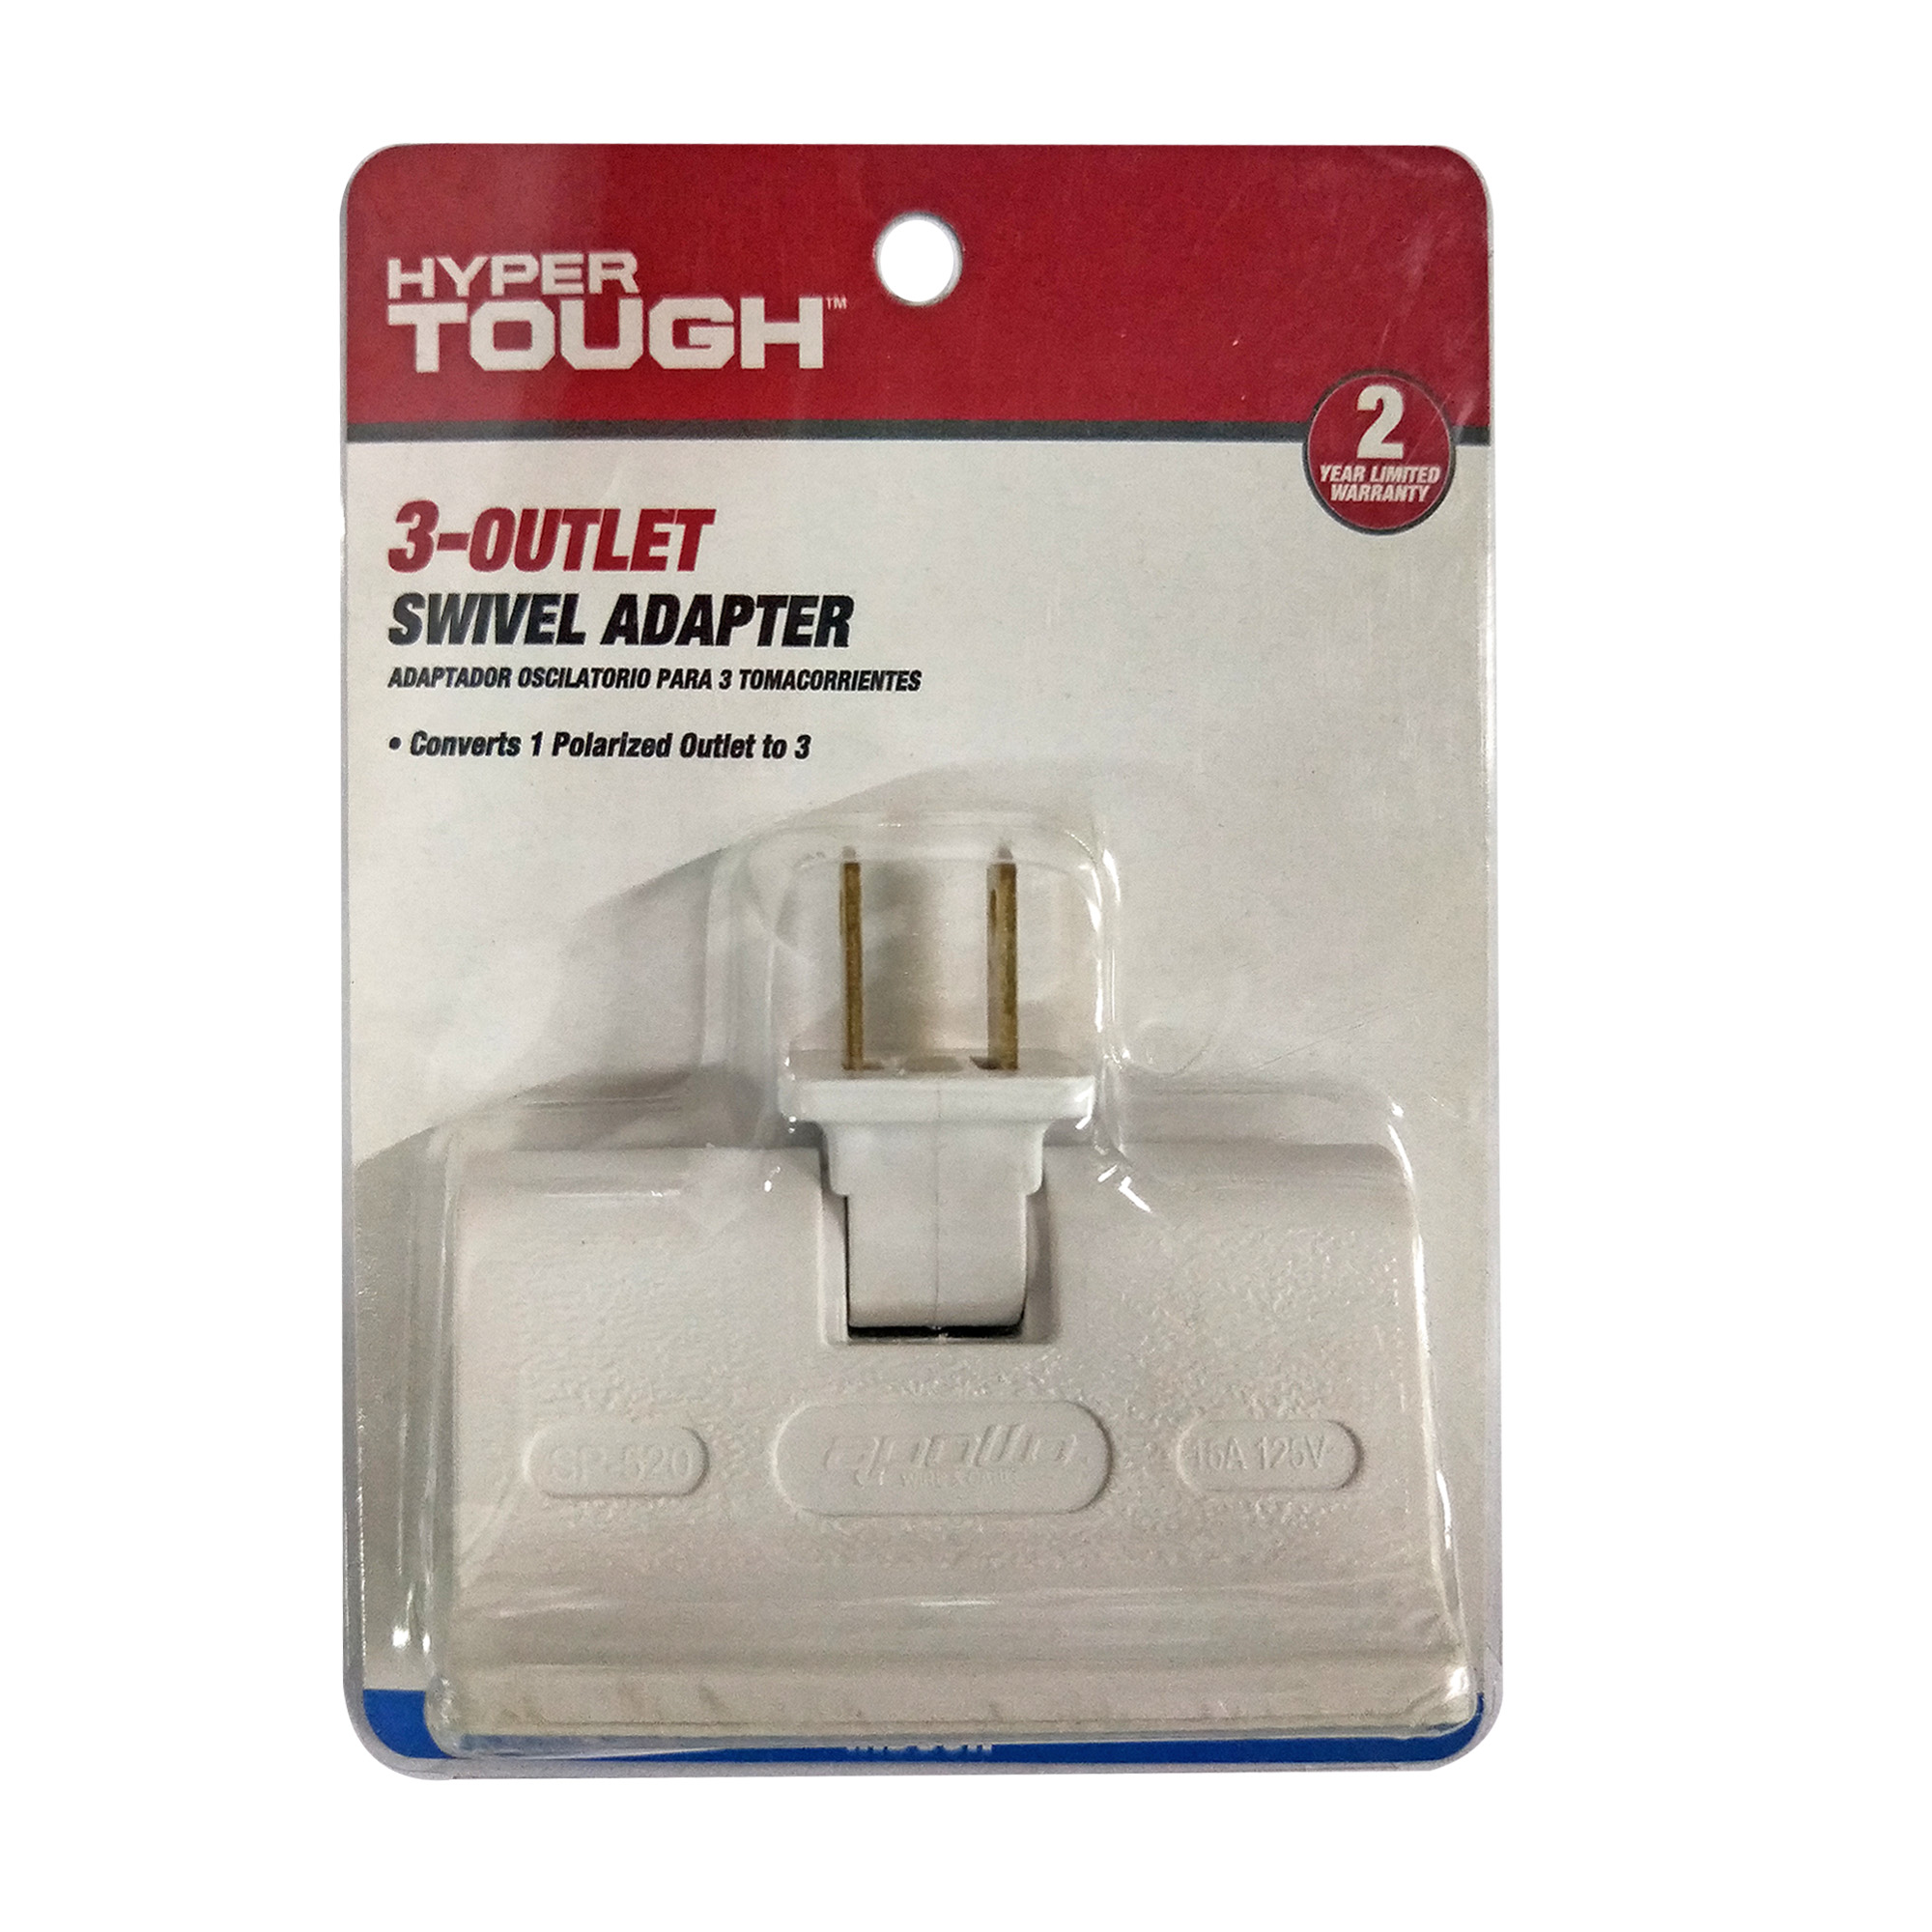 Hyper Tough 3 Outlet Swivel Adapter White, For Indoor use